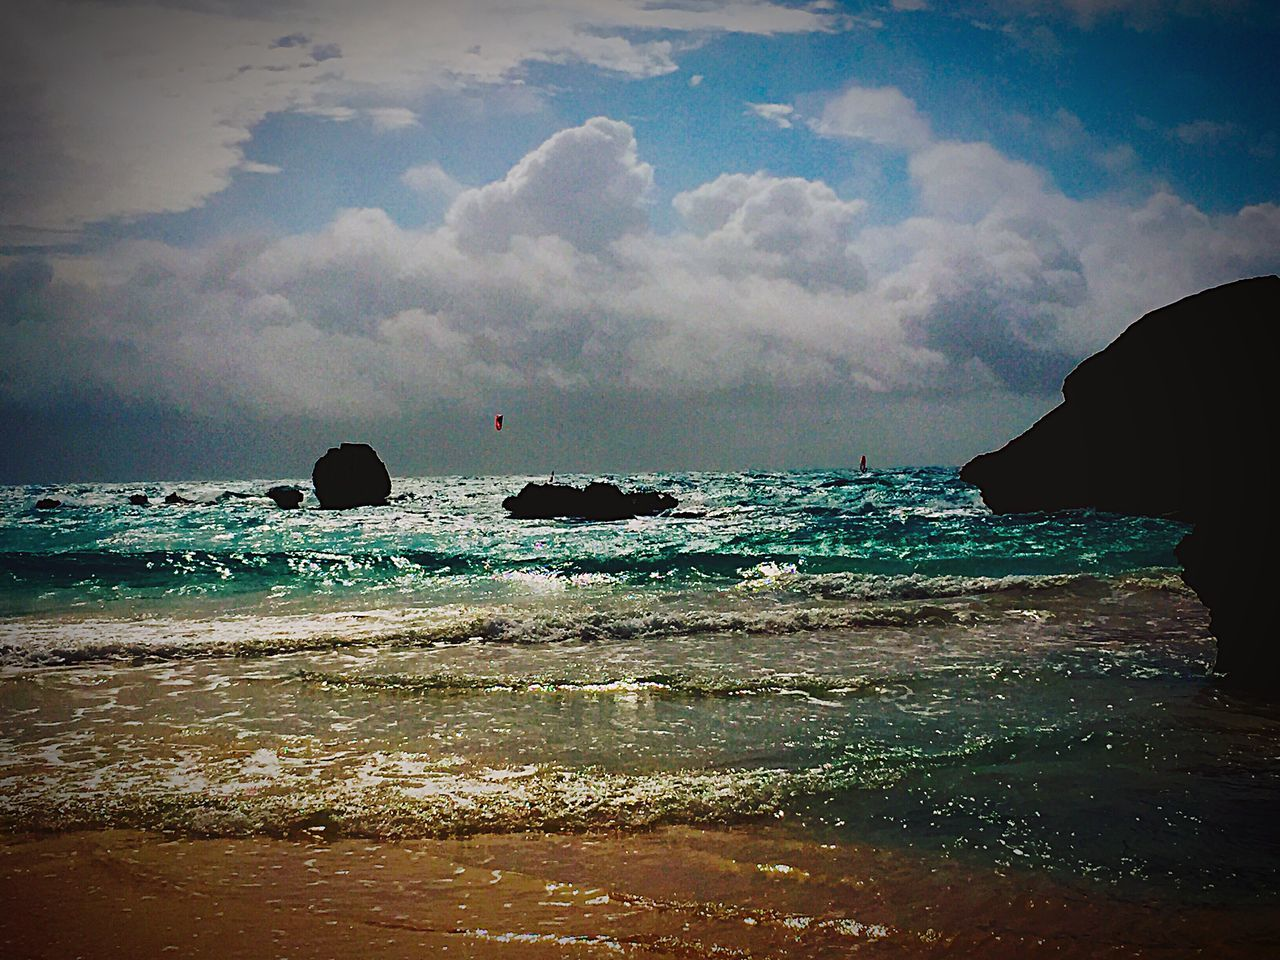 sea, water, beauty in nature, nature, sky, scenics, cloud - sky, horizon over water, tranquility, silhouette, beach, no people, outdoors, day